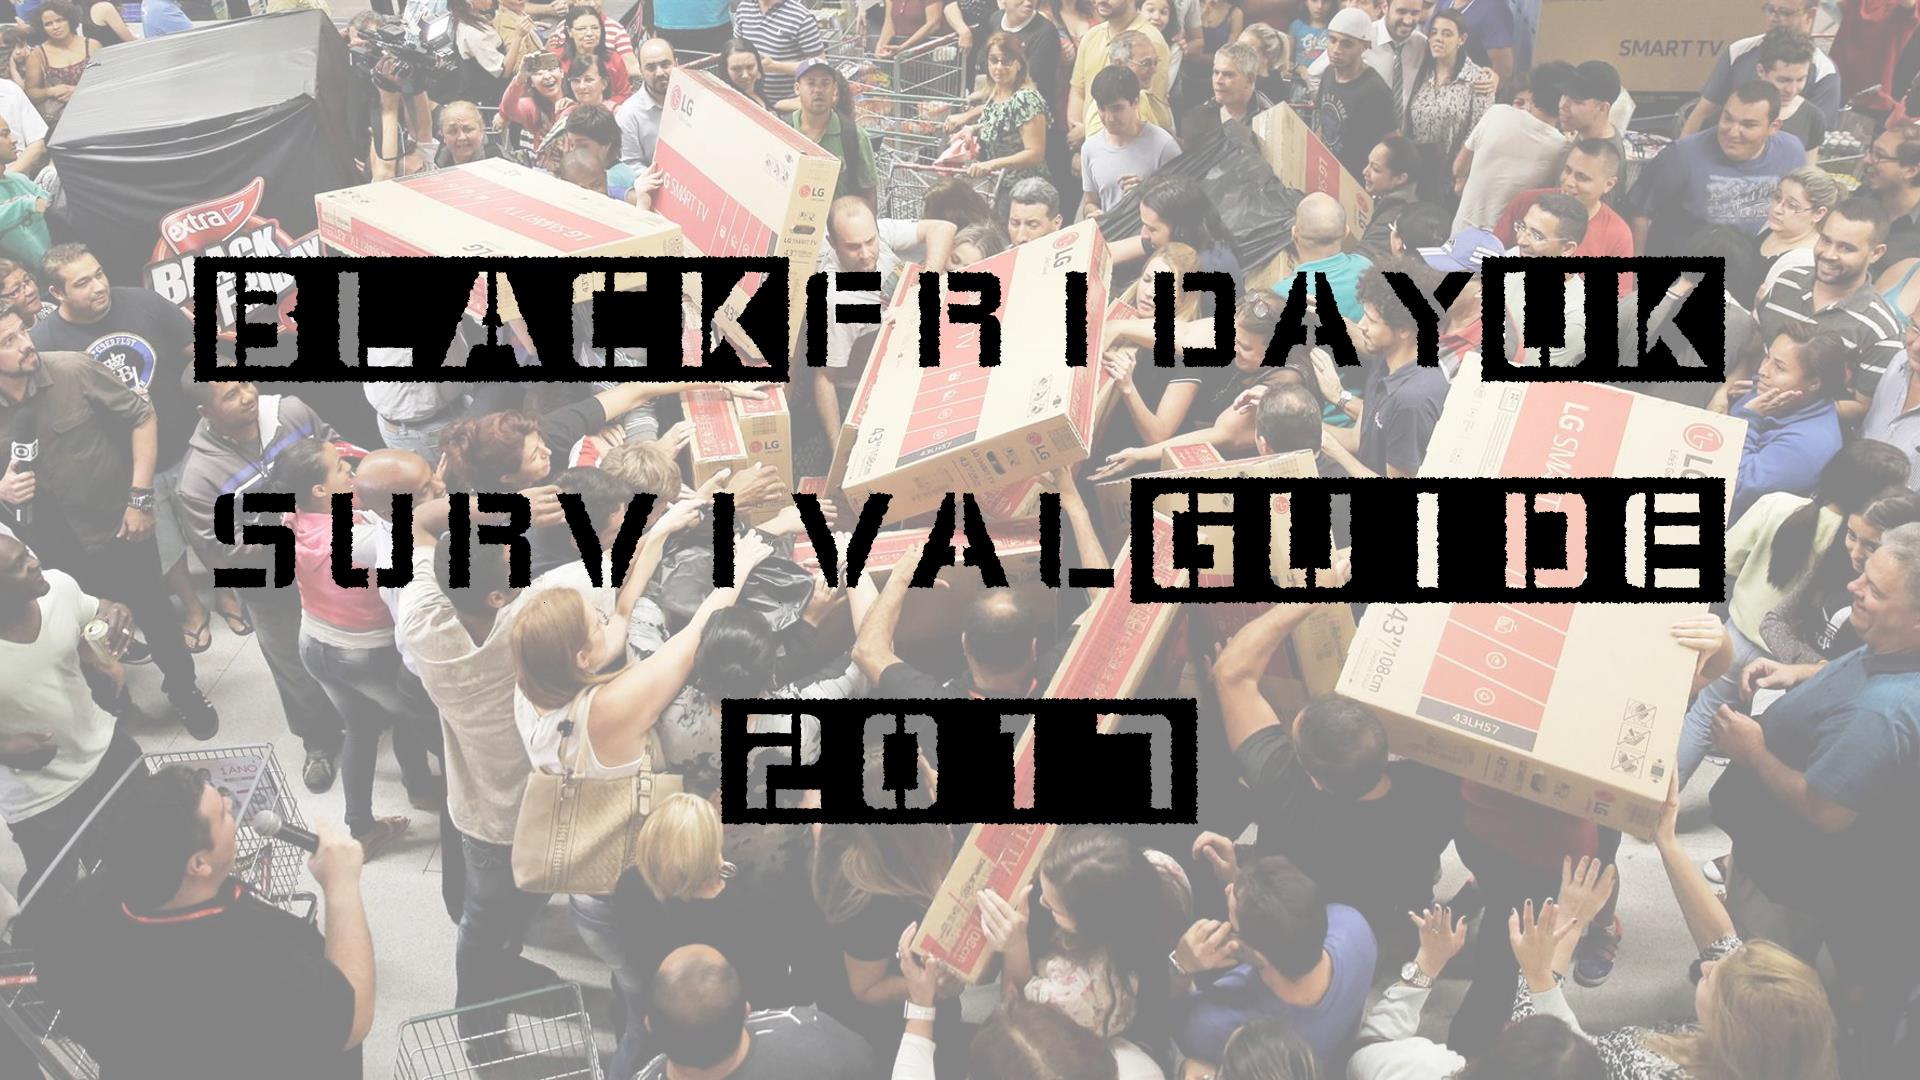 Black Friday UK 2017 | Carl's helpful guide on navigating this year's video game deals